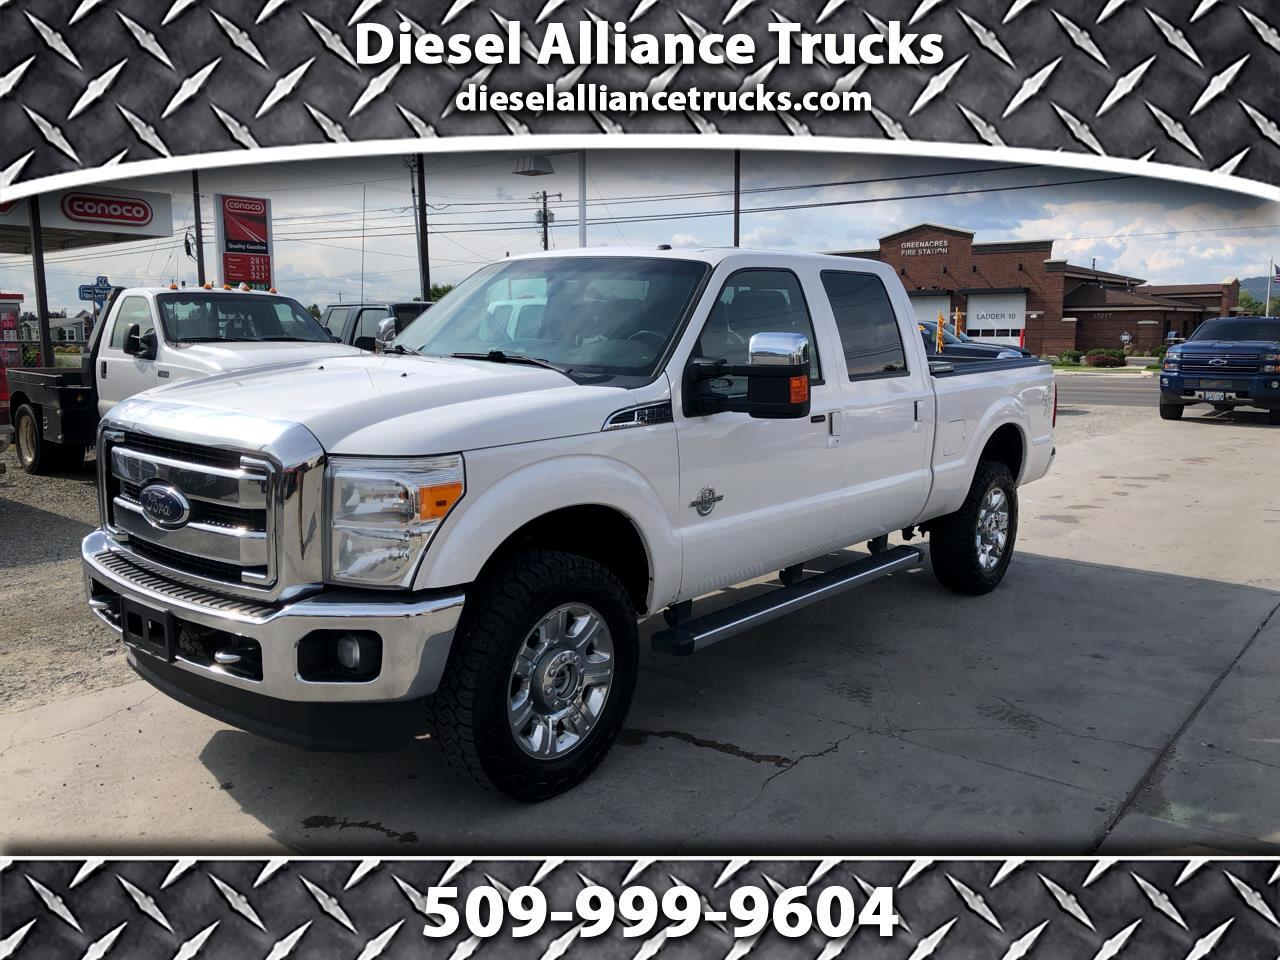 2014 Ford F-350 SD Lariat Crew Cab Short Bed 4WD